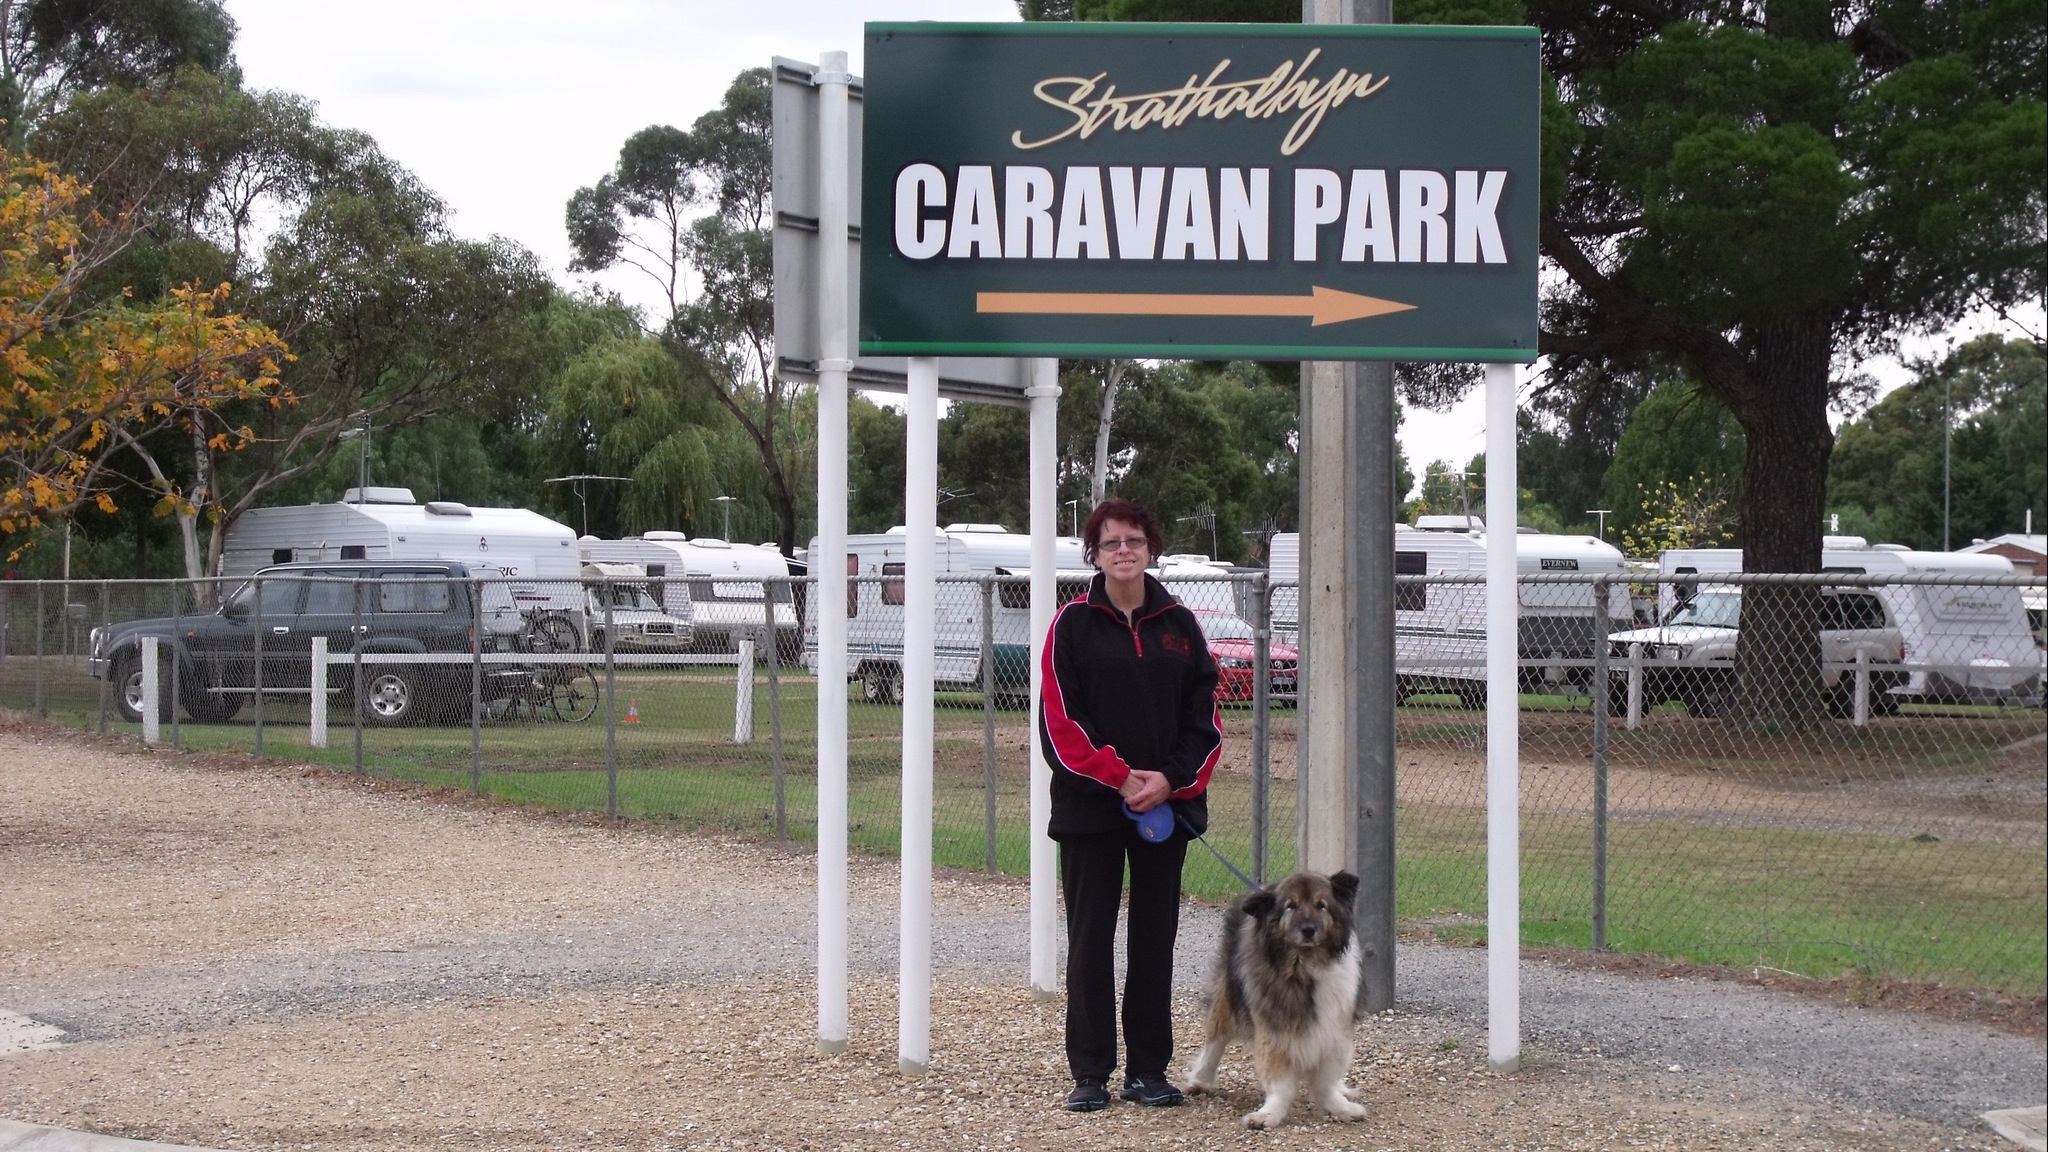 Strathalbyn Caravan Park - Accommodation in Bendigo